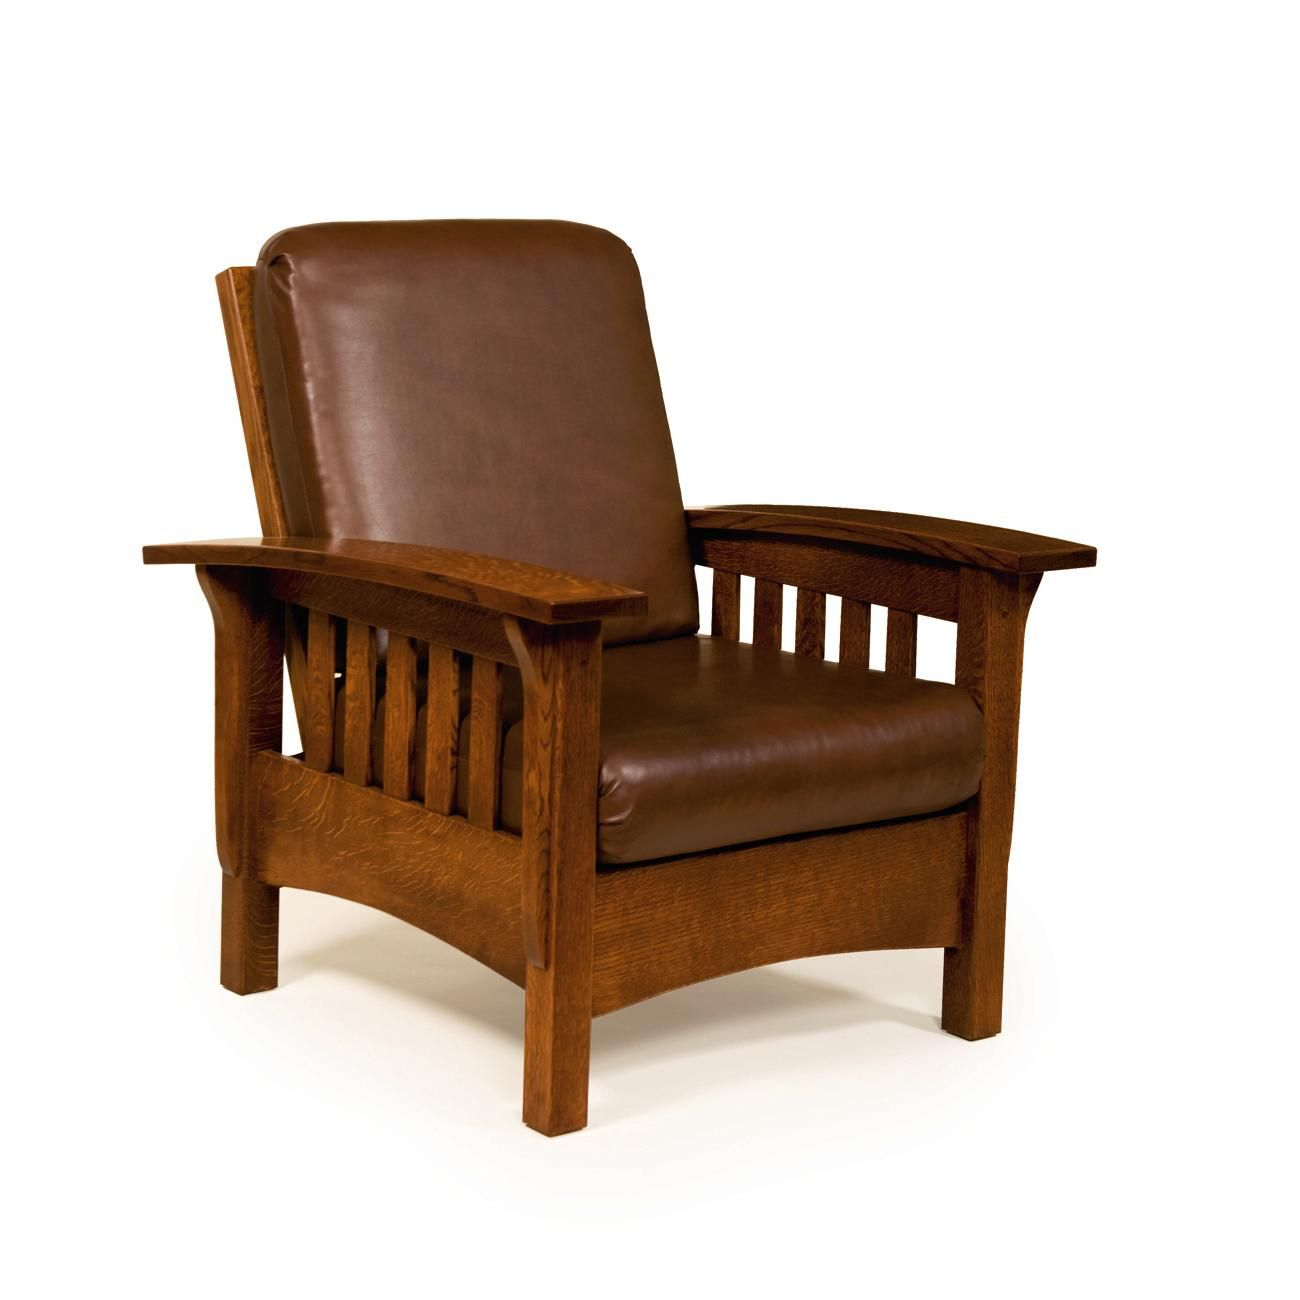 Arts and crafts furniture chair - Morris Chair 1866 Wood The Real Stuff Quarter Sawn Oak